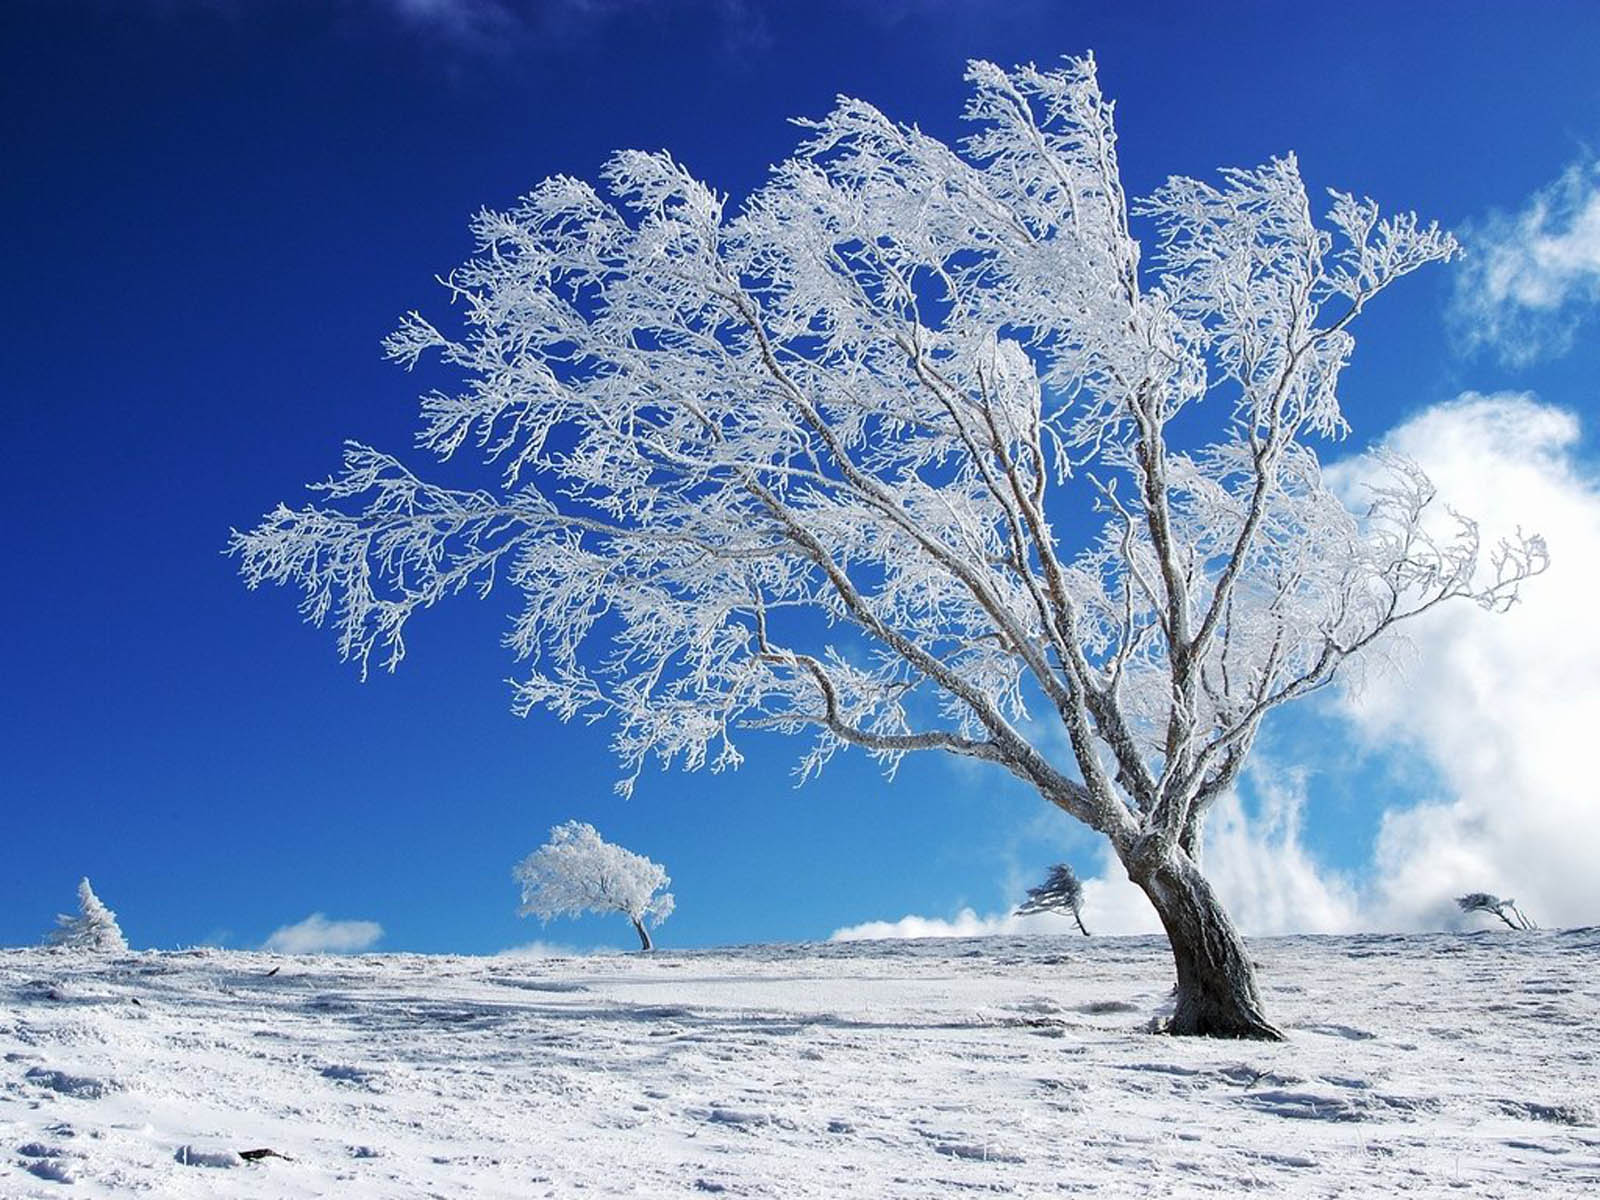 Winter Wallpapers. Winter Desktop Wallpapers and Backgrounds jpg